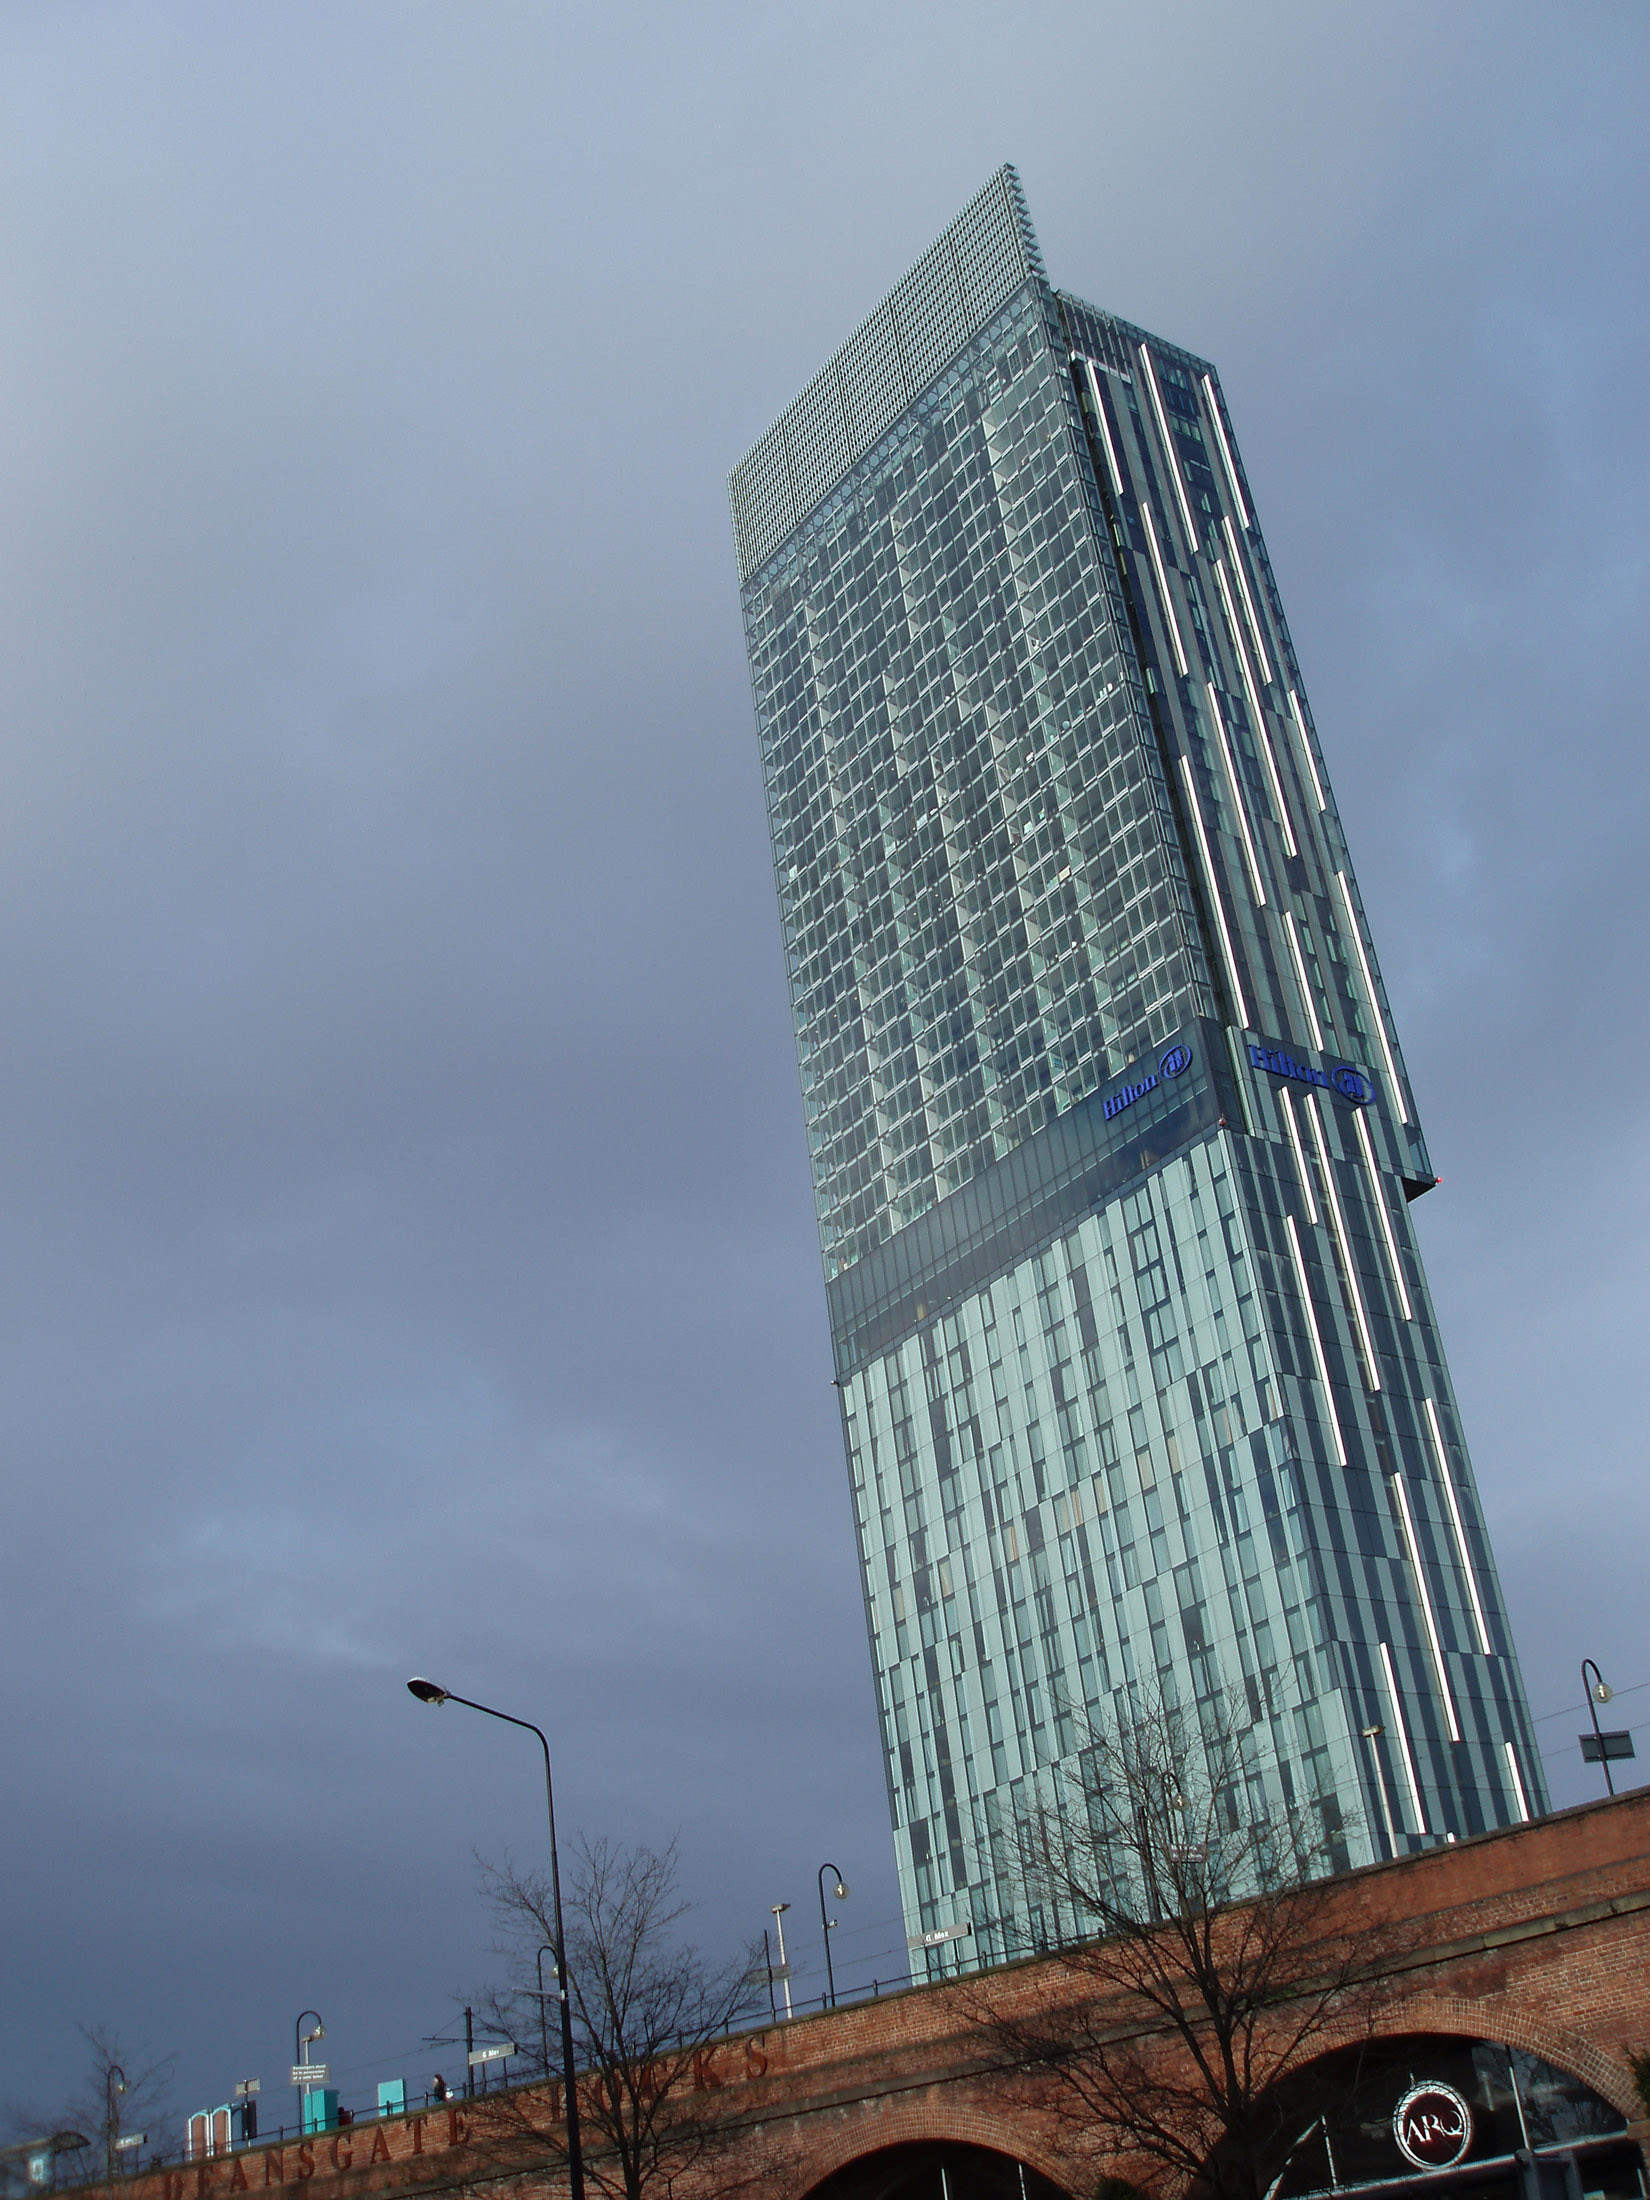 Famous Architectural Beetham Tower, also known as Hilton Tower, a 47-storey mixed-use skyscraper in Manchester, England on Gray Sky Background.